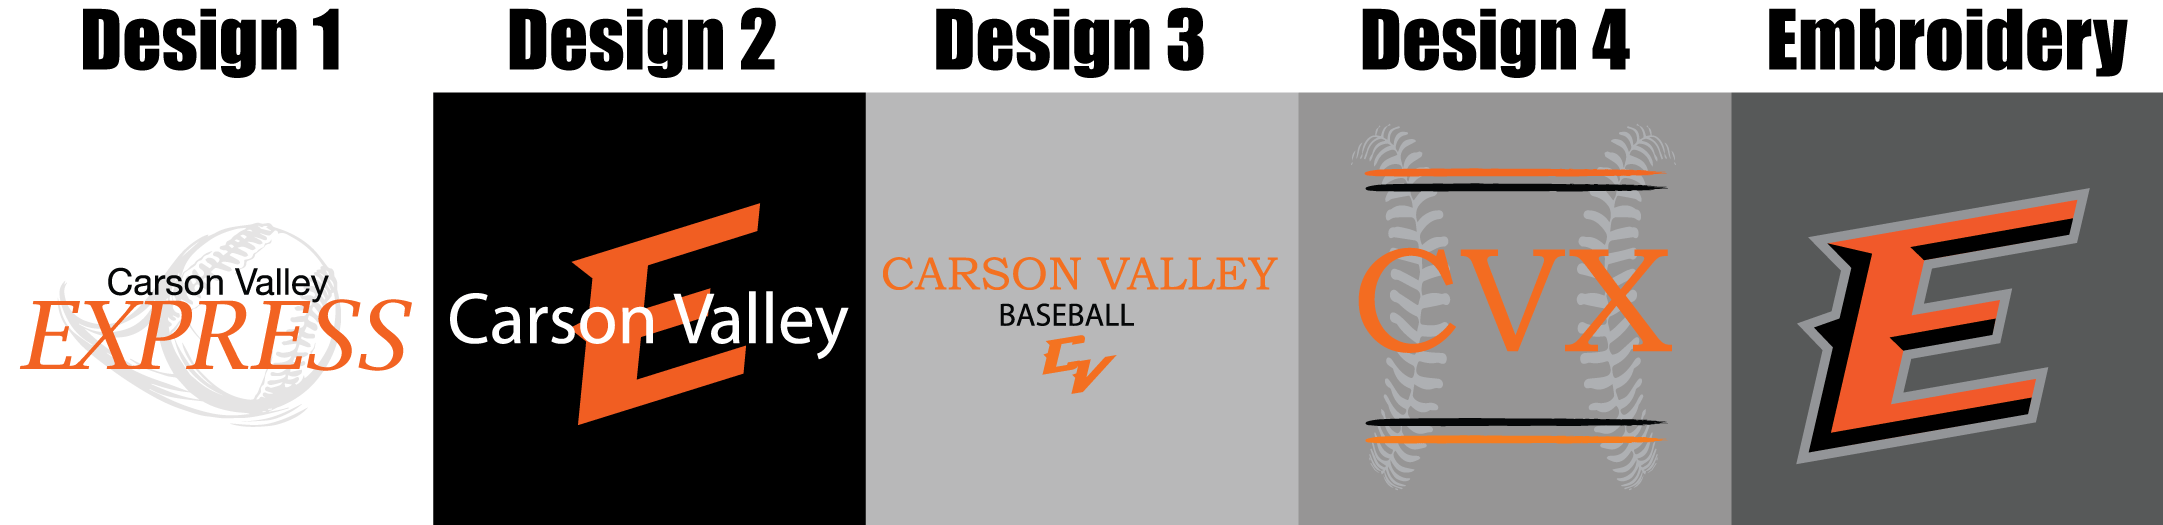 Carson Valley Express - Absolute Graphix PNG